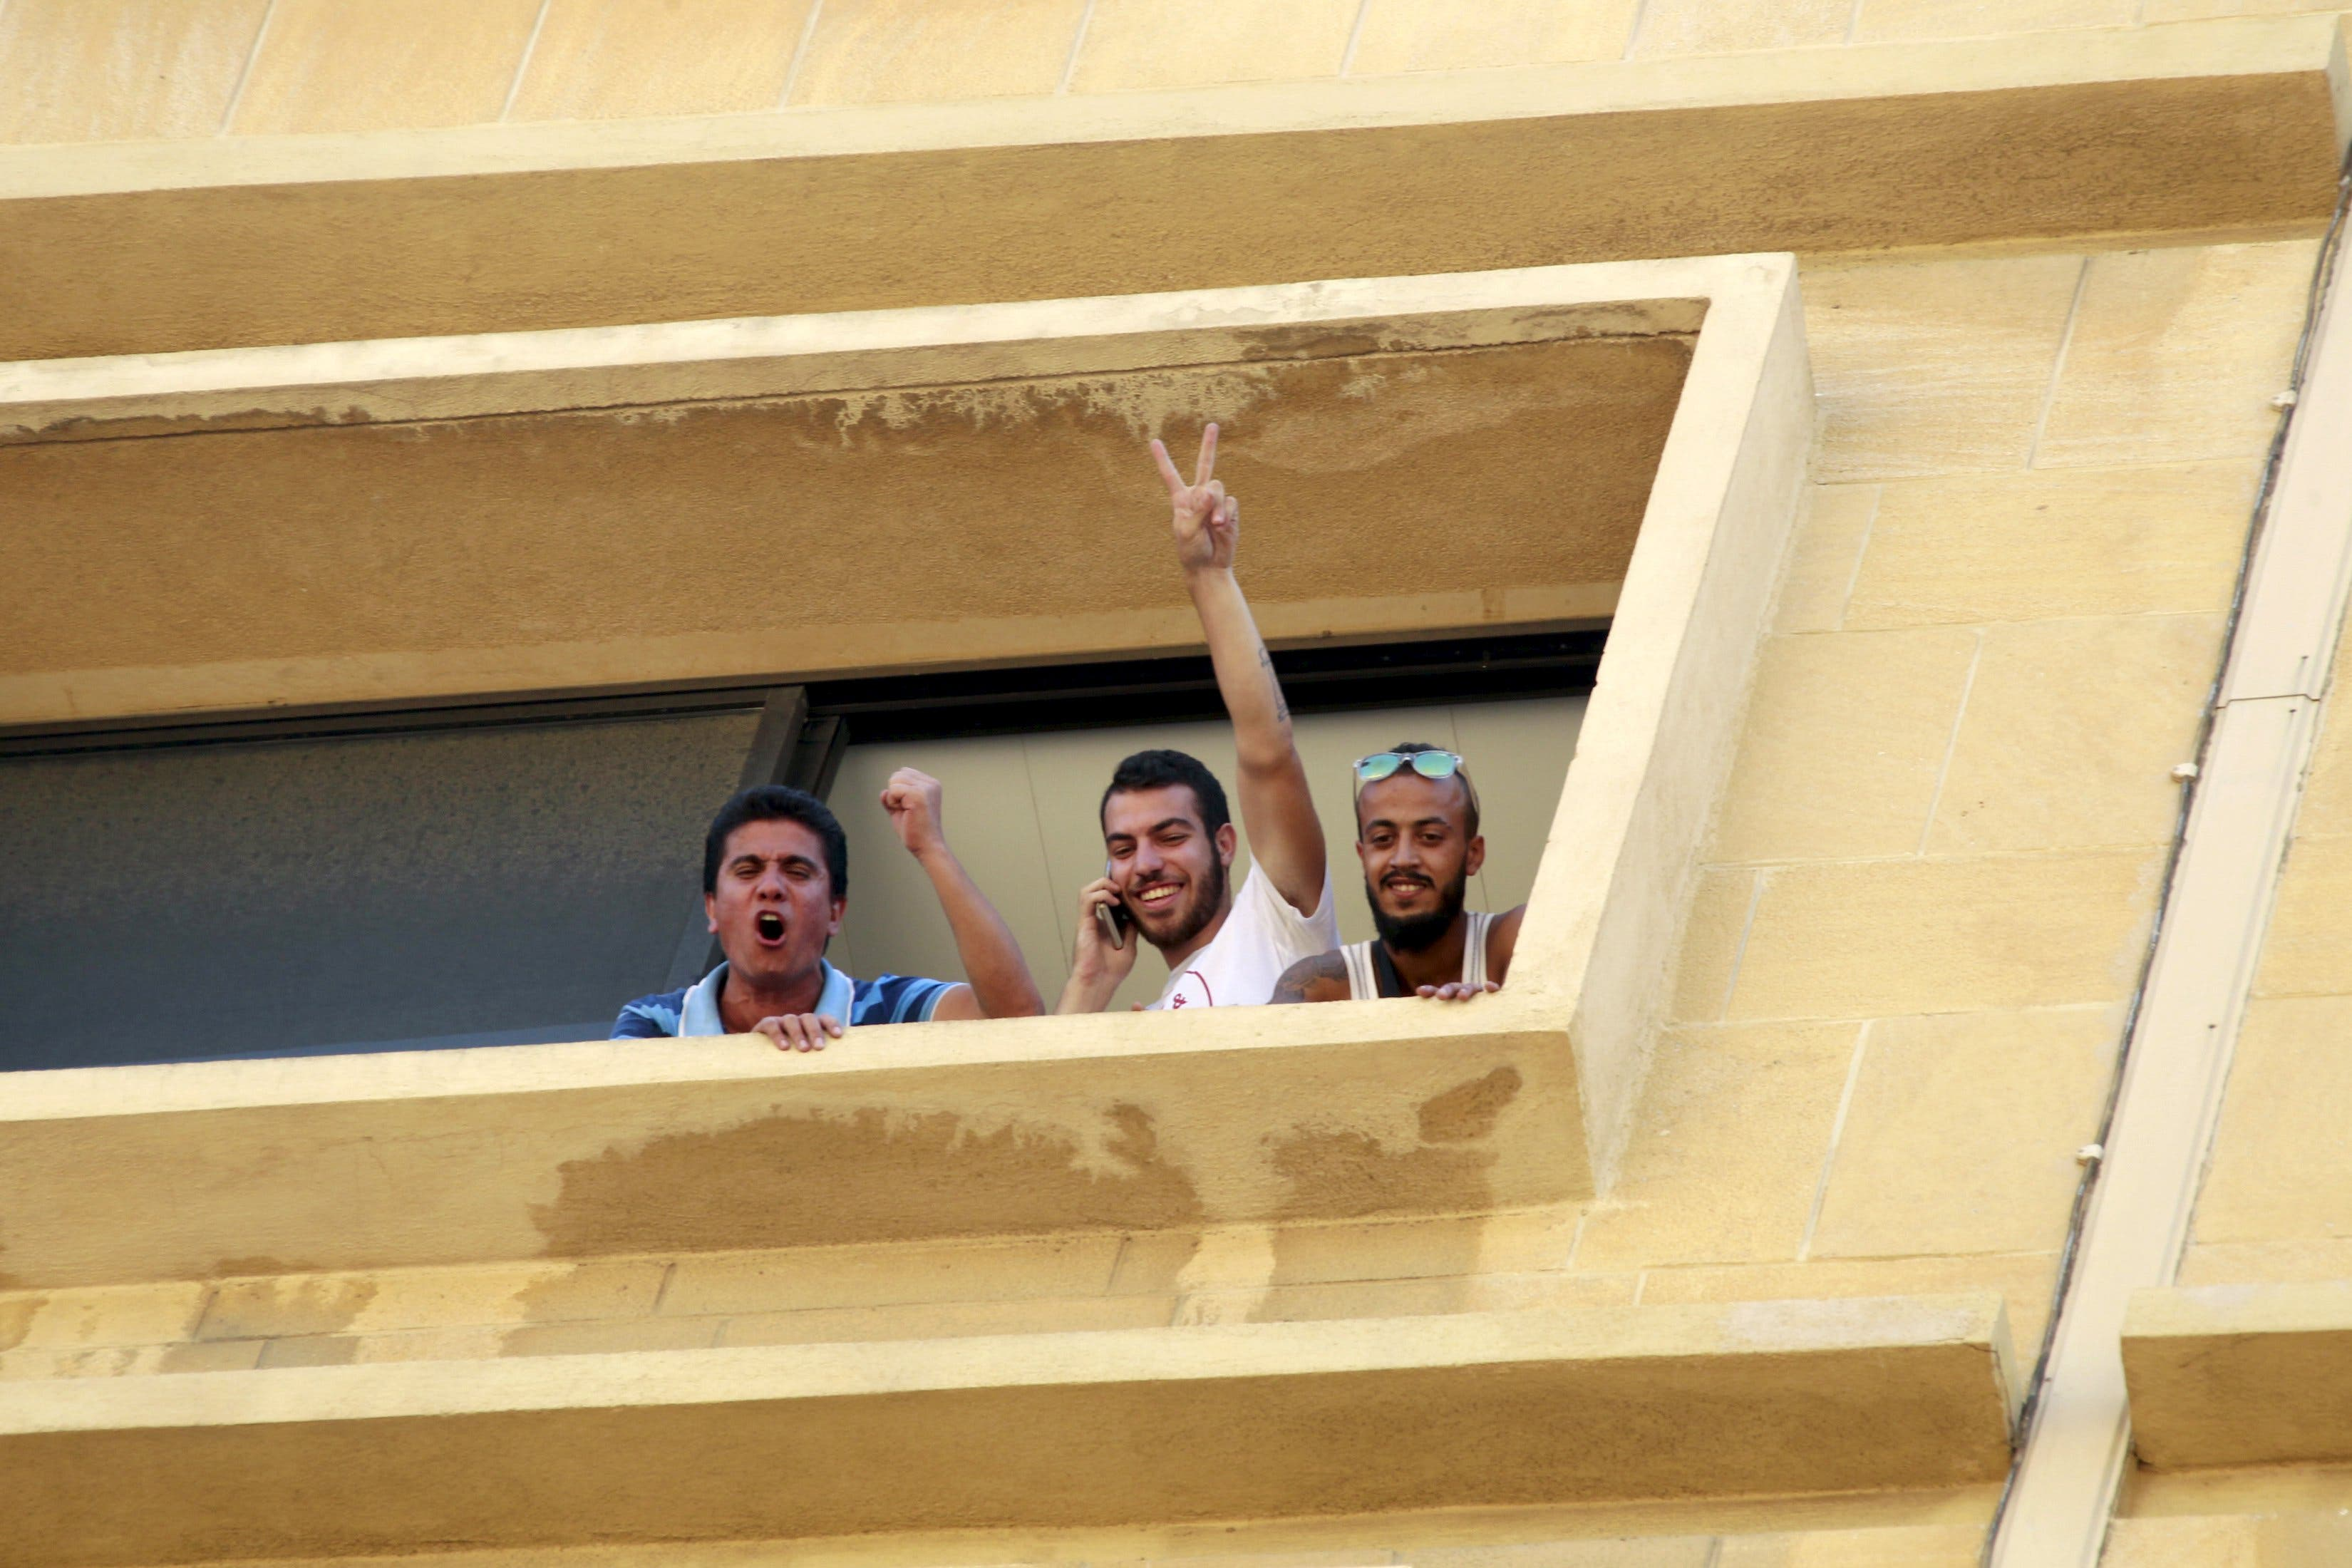 Protestors gesture from a window of the environment ministry in downtown Beirut, Lebanon September 1, 2015. Reuters